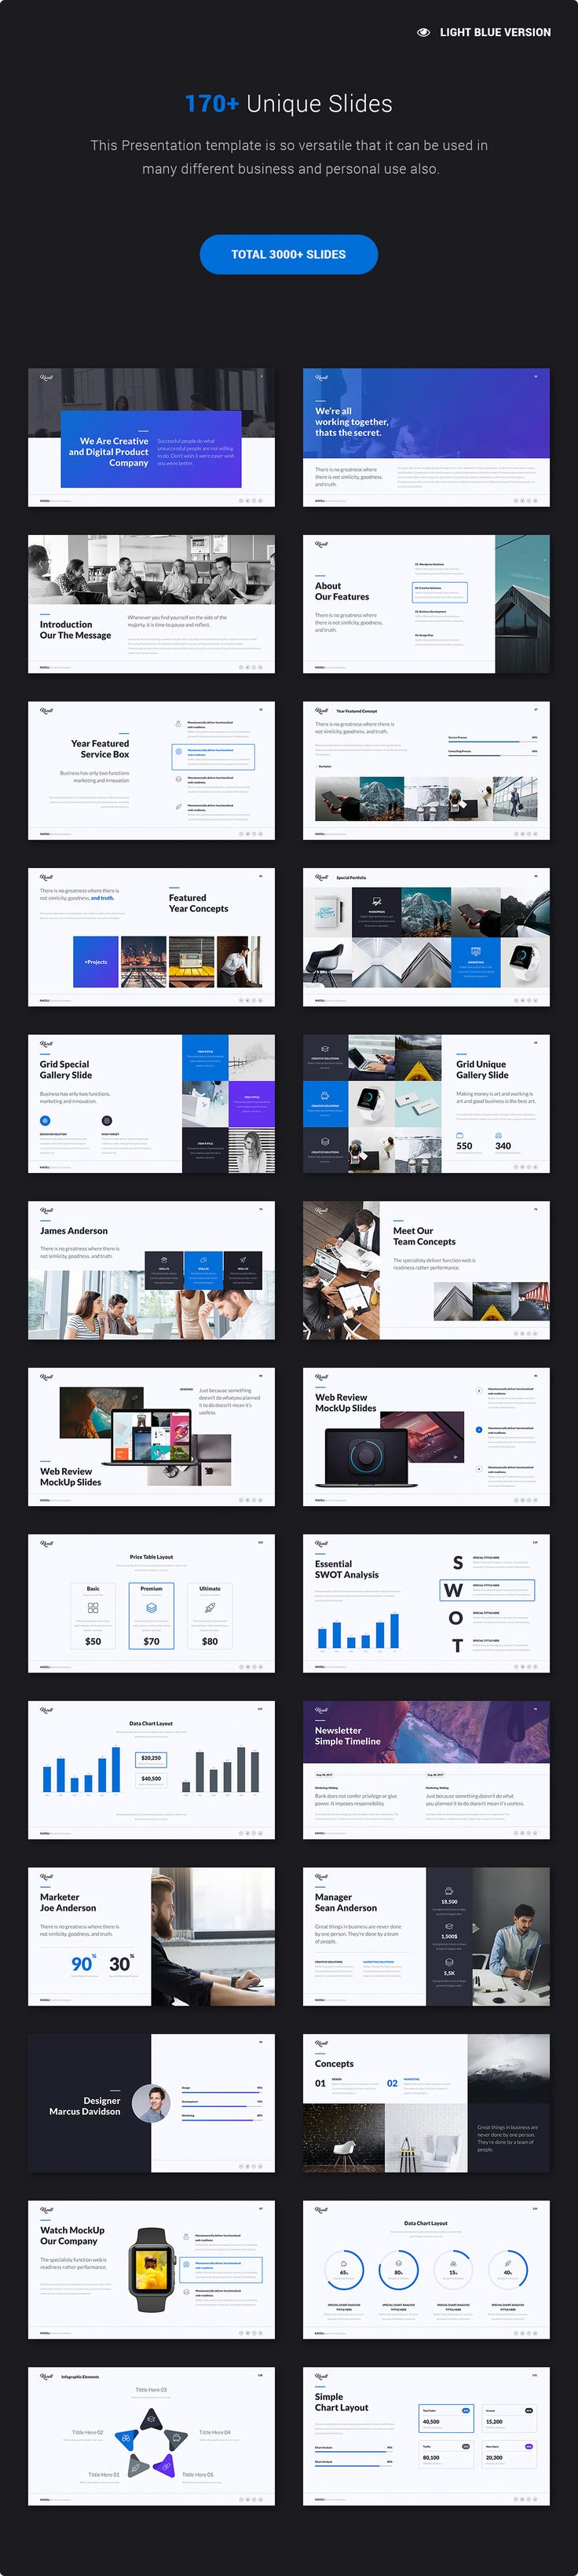 303 best Powerpoint and Publisher Templates images on Pinterest